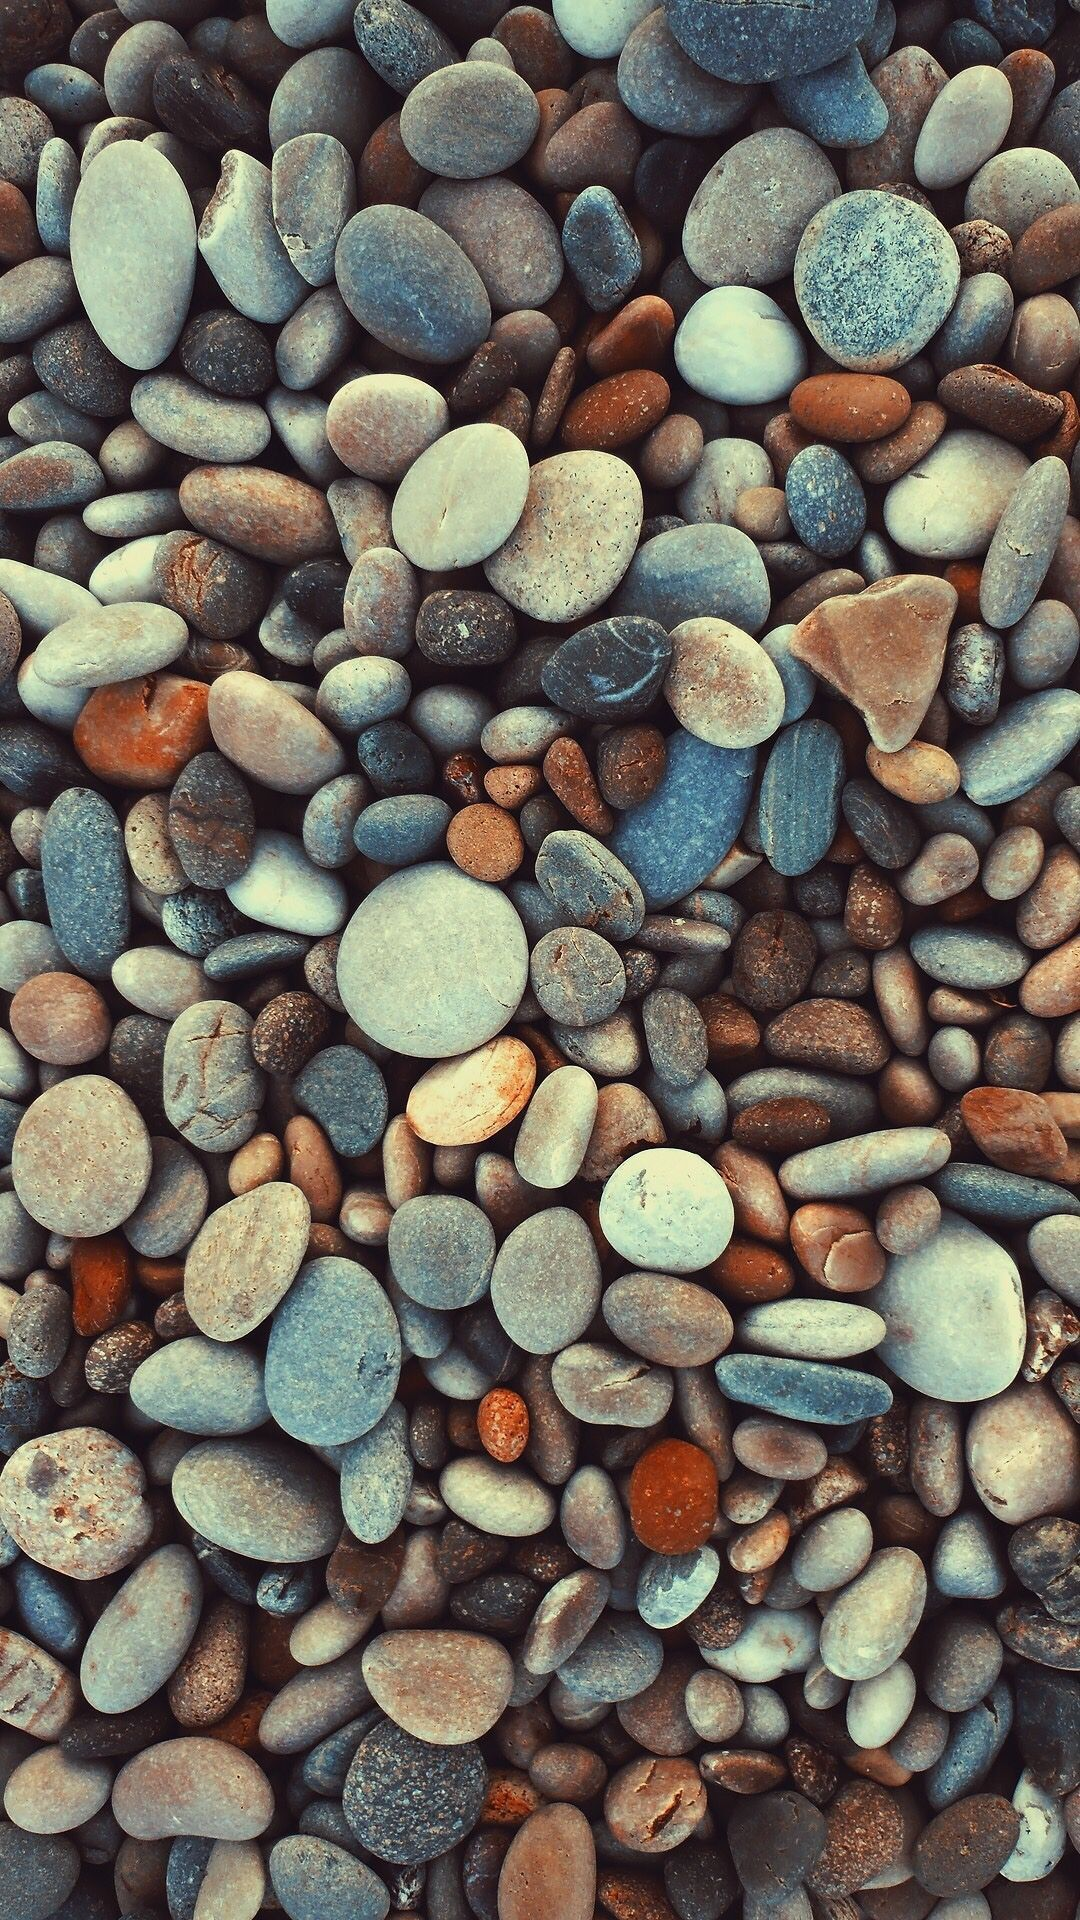 Stone iPhone Wallpapers   Top Stone iPhone Backgrounds 1080x1920